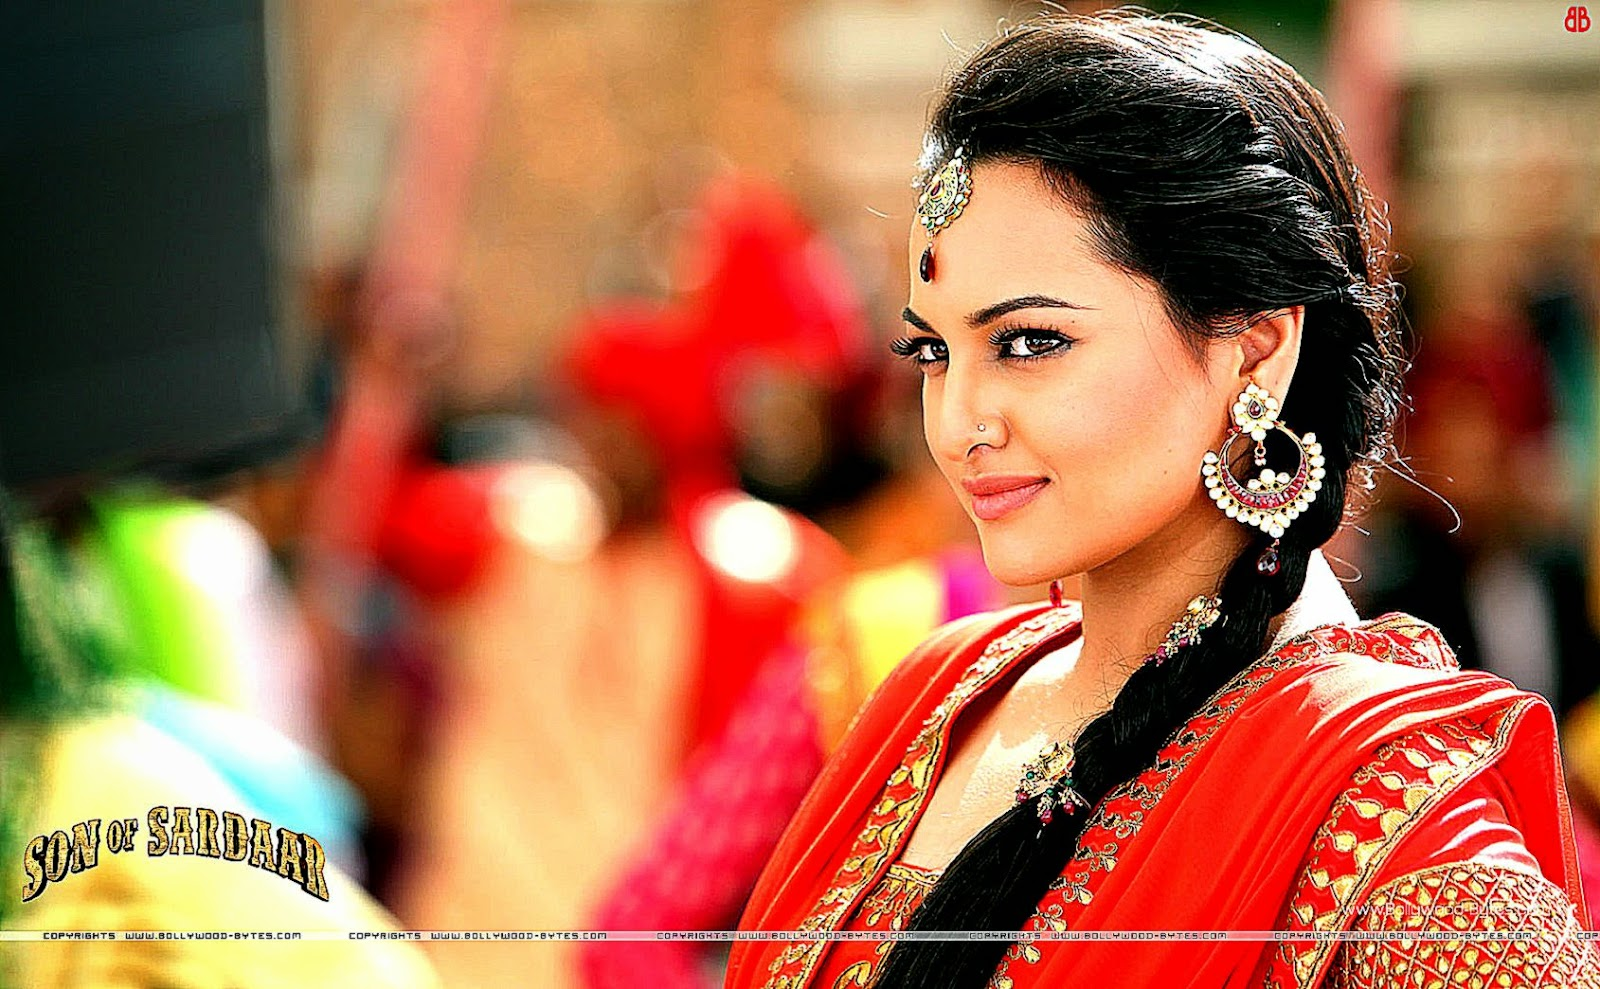 Sonakshi Sinha Hd Wallpapers: Sonakshi Sinha Hd Wallpaper